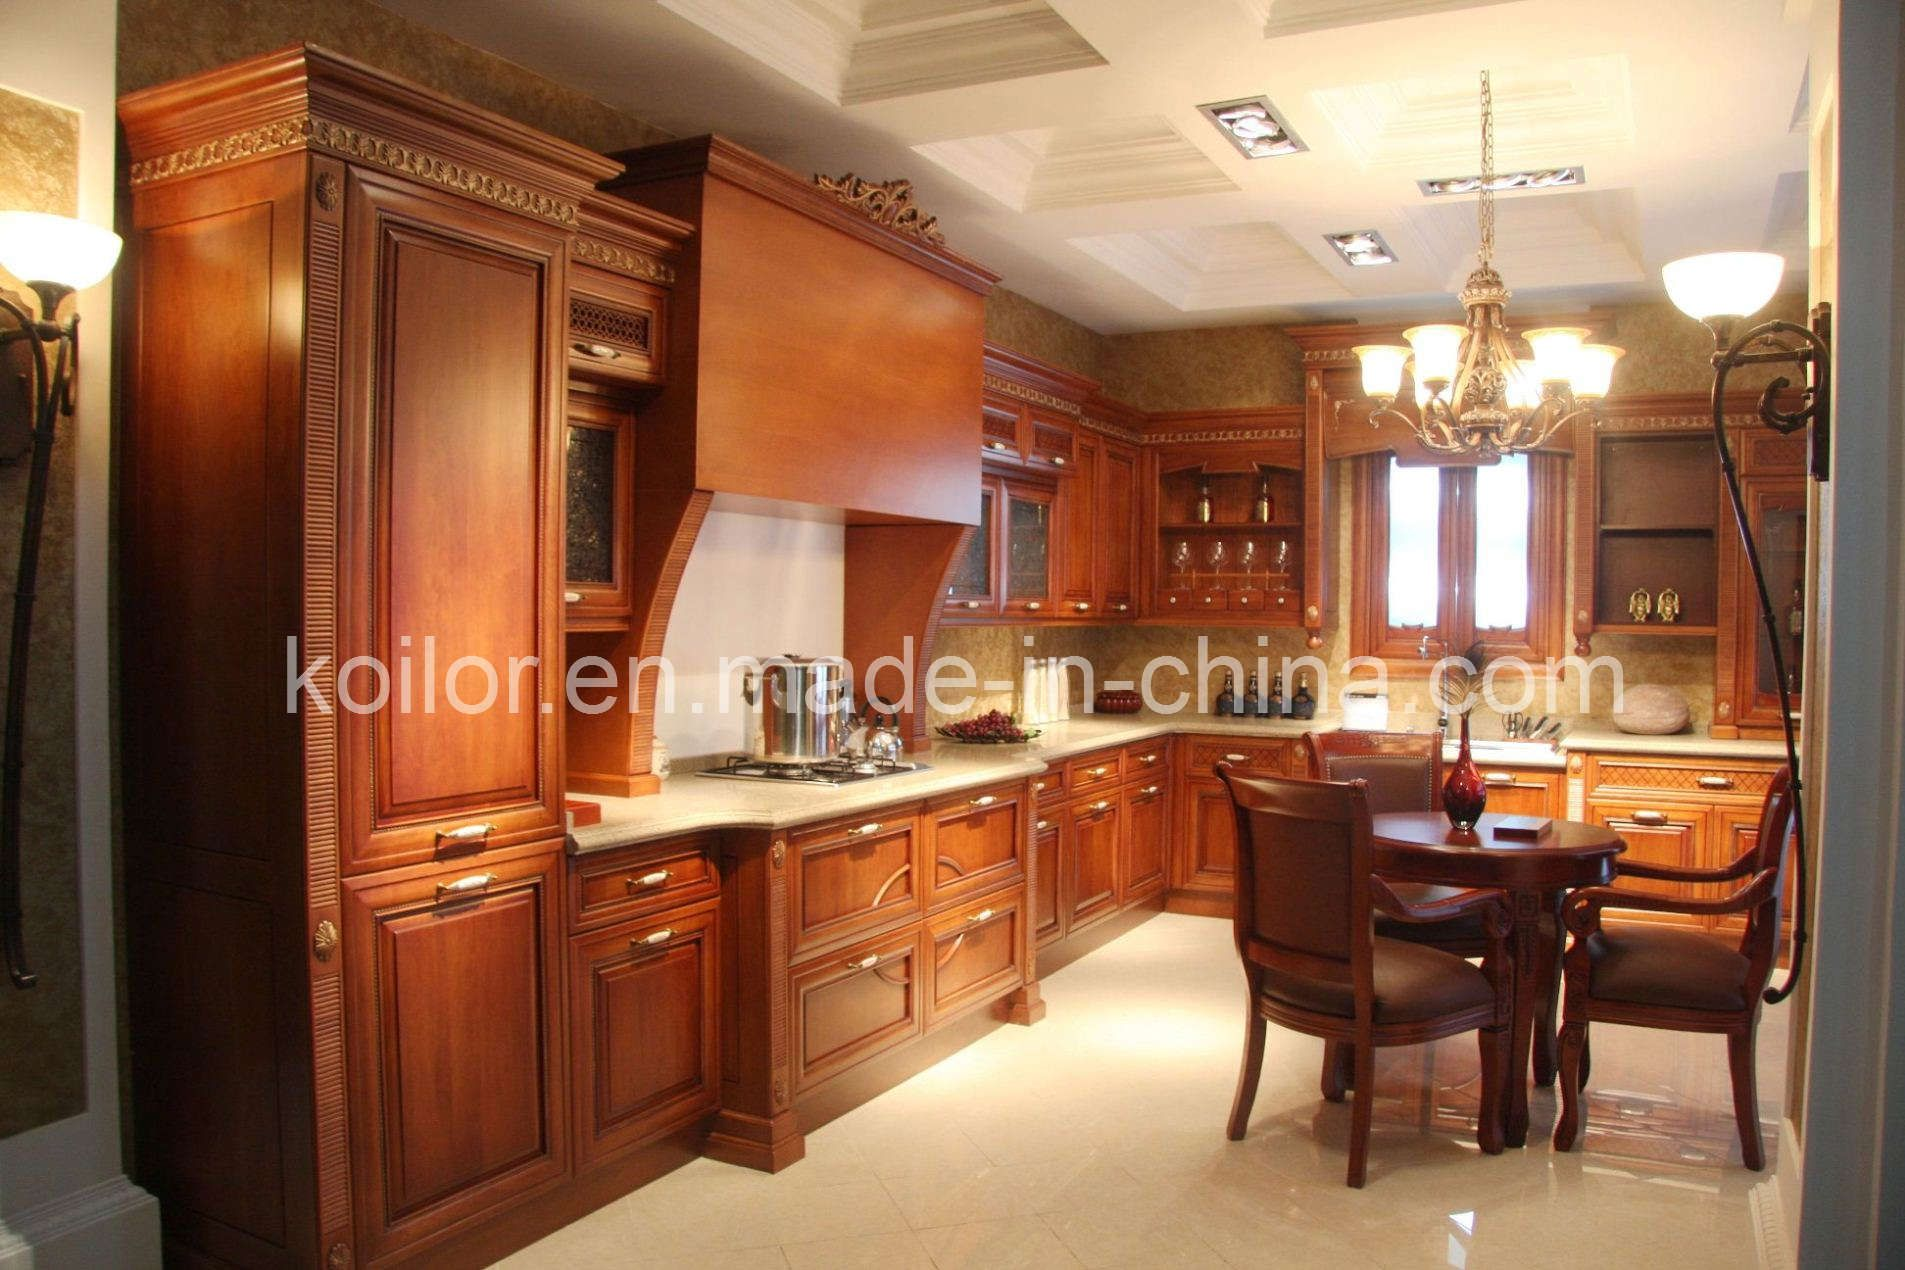 Kitchen Cabinets Kitchen Cabinet Solid Wood Kitchen Cabinets Royal China Kitchen Solid Wood Kitchen Cabinets Solid Wood Kitchens Wood Kitchen Cabinets